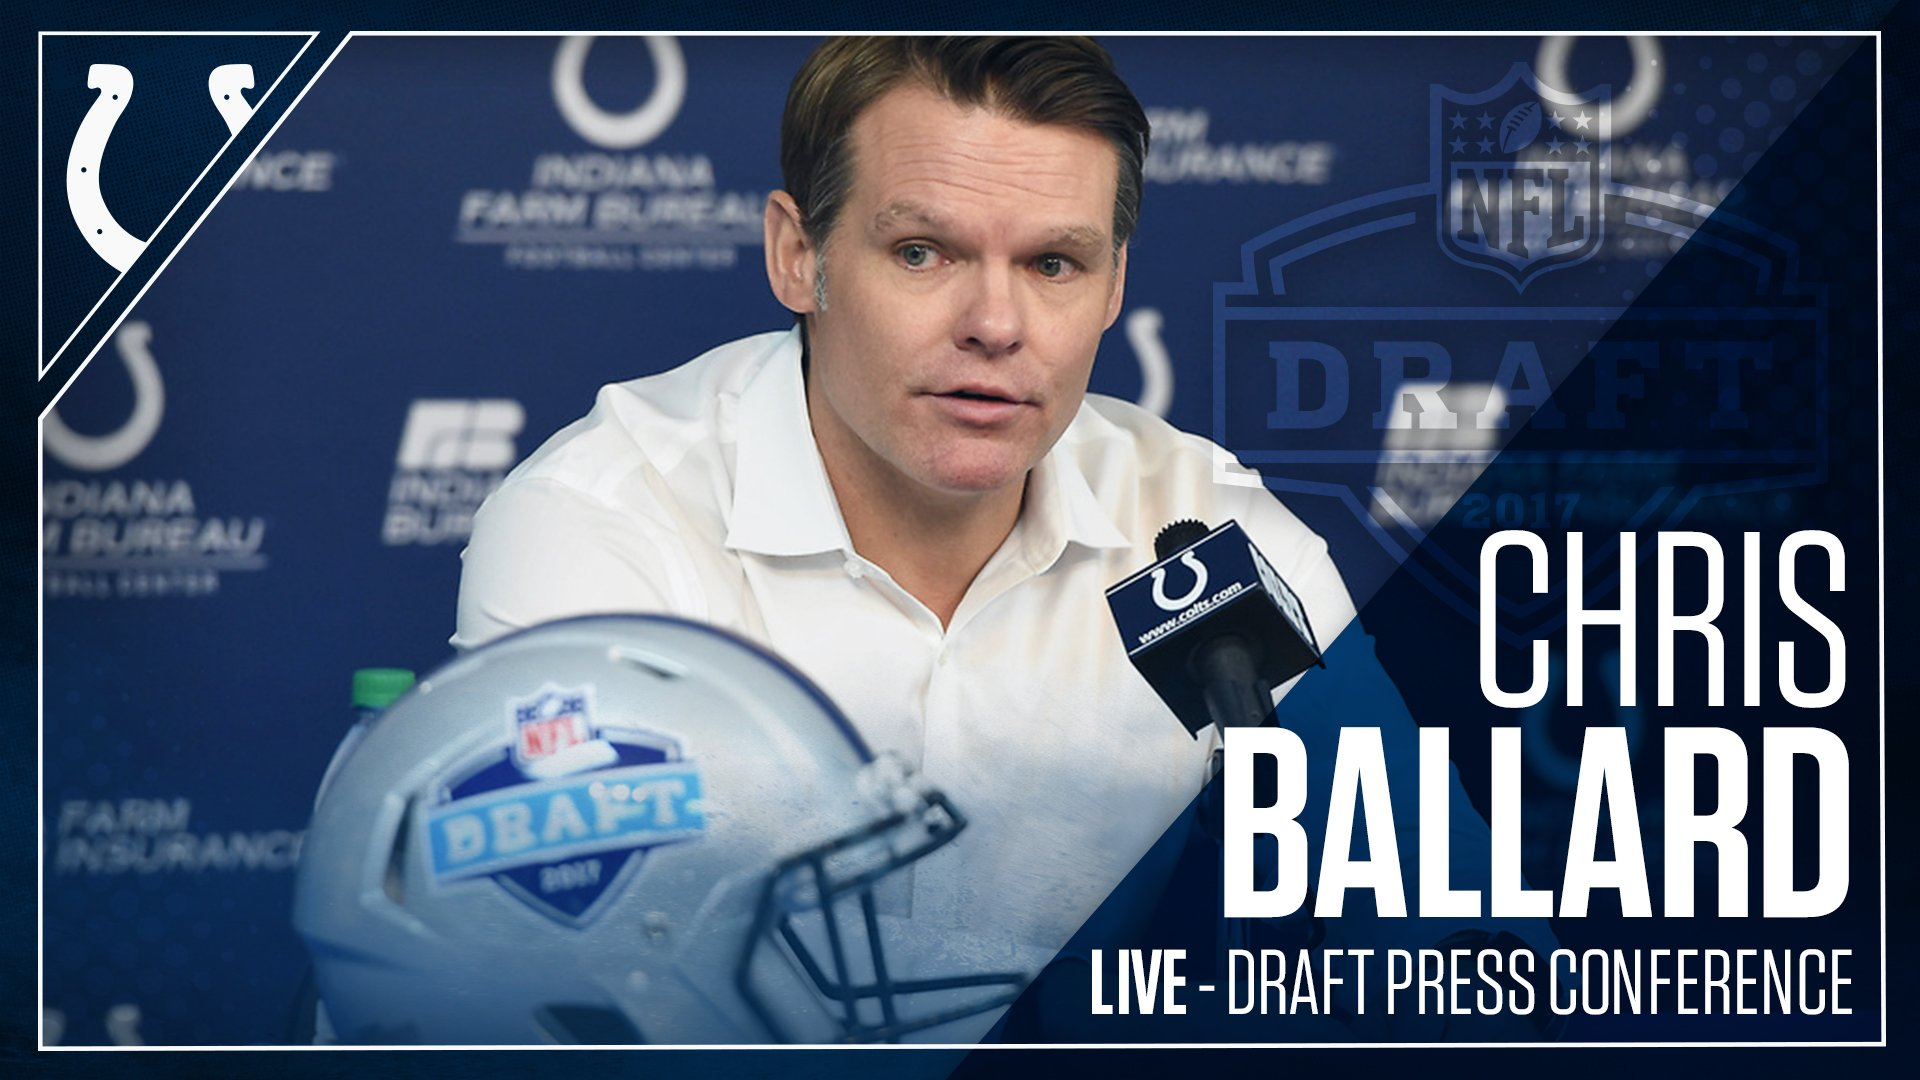 Chris Ballard is LIVE recapping #ColtsDraft.  WATCH NOW:  �� https://t.co/od6w2Cl8Ps       �� Colts Mobile App https://t.co/XcAJ9dErYk